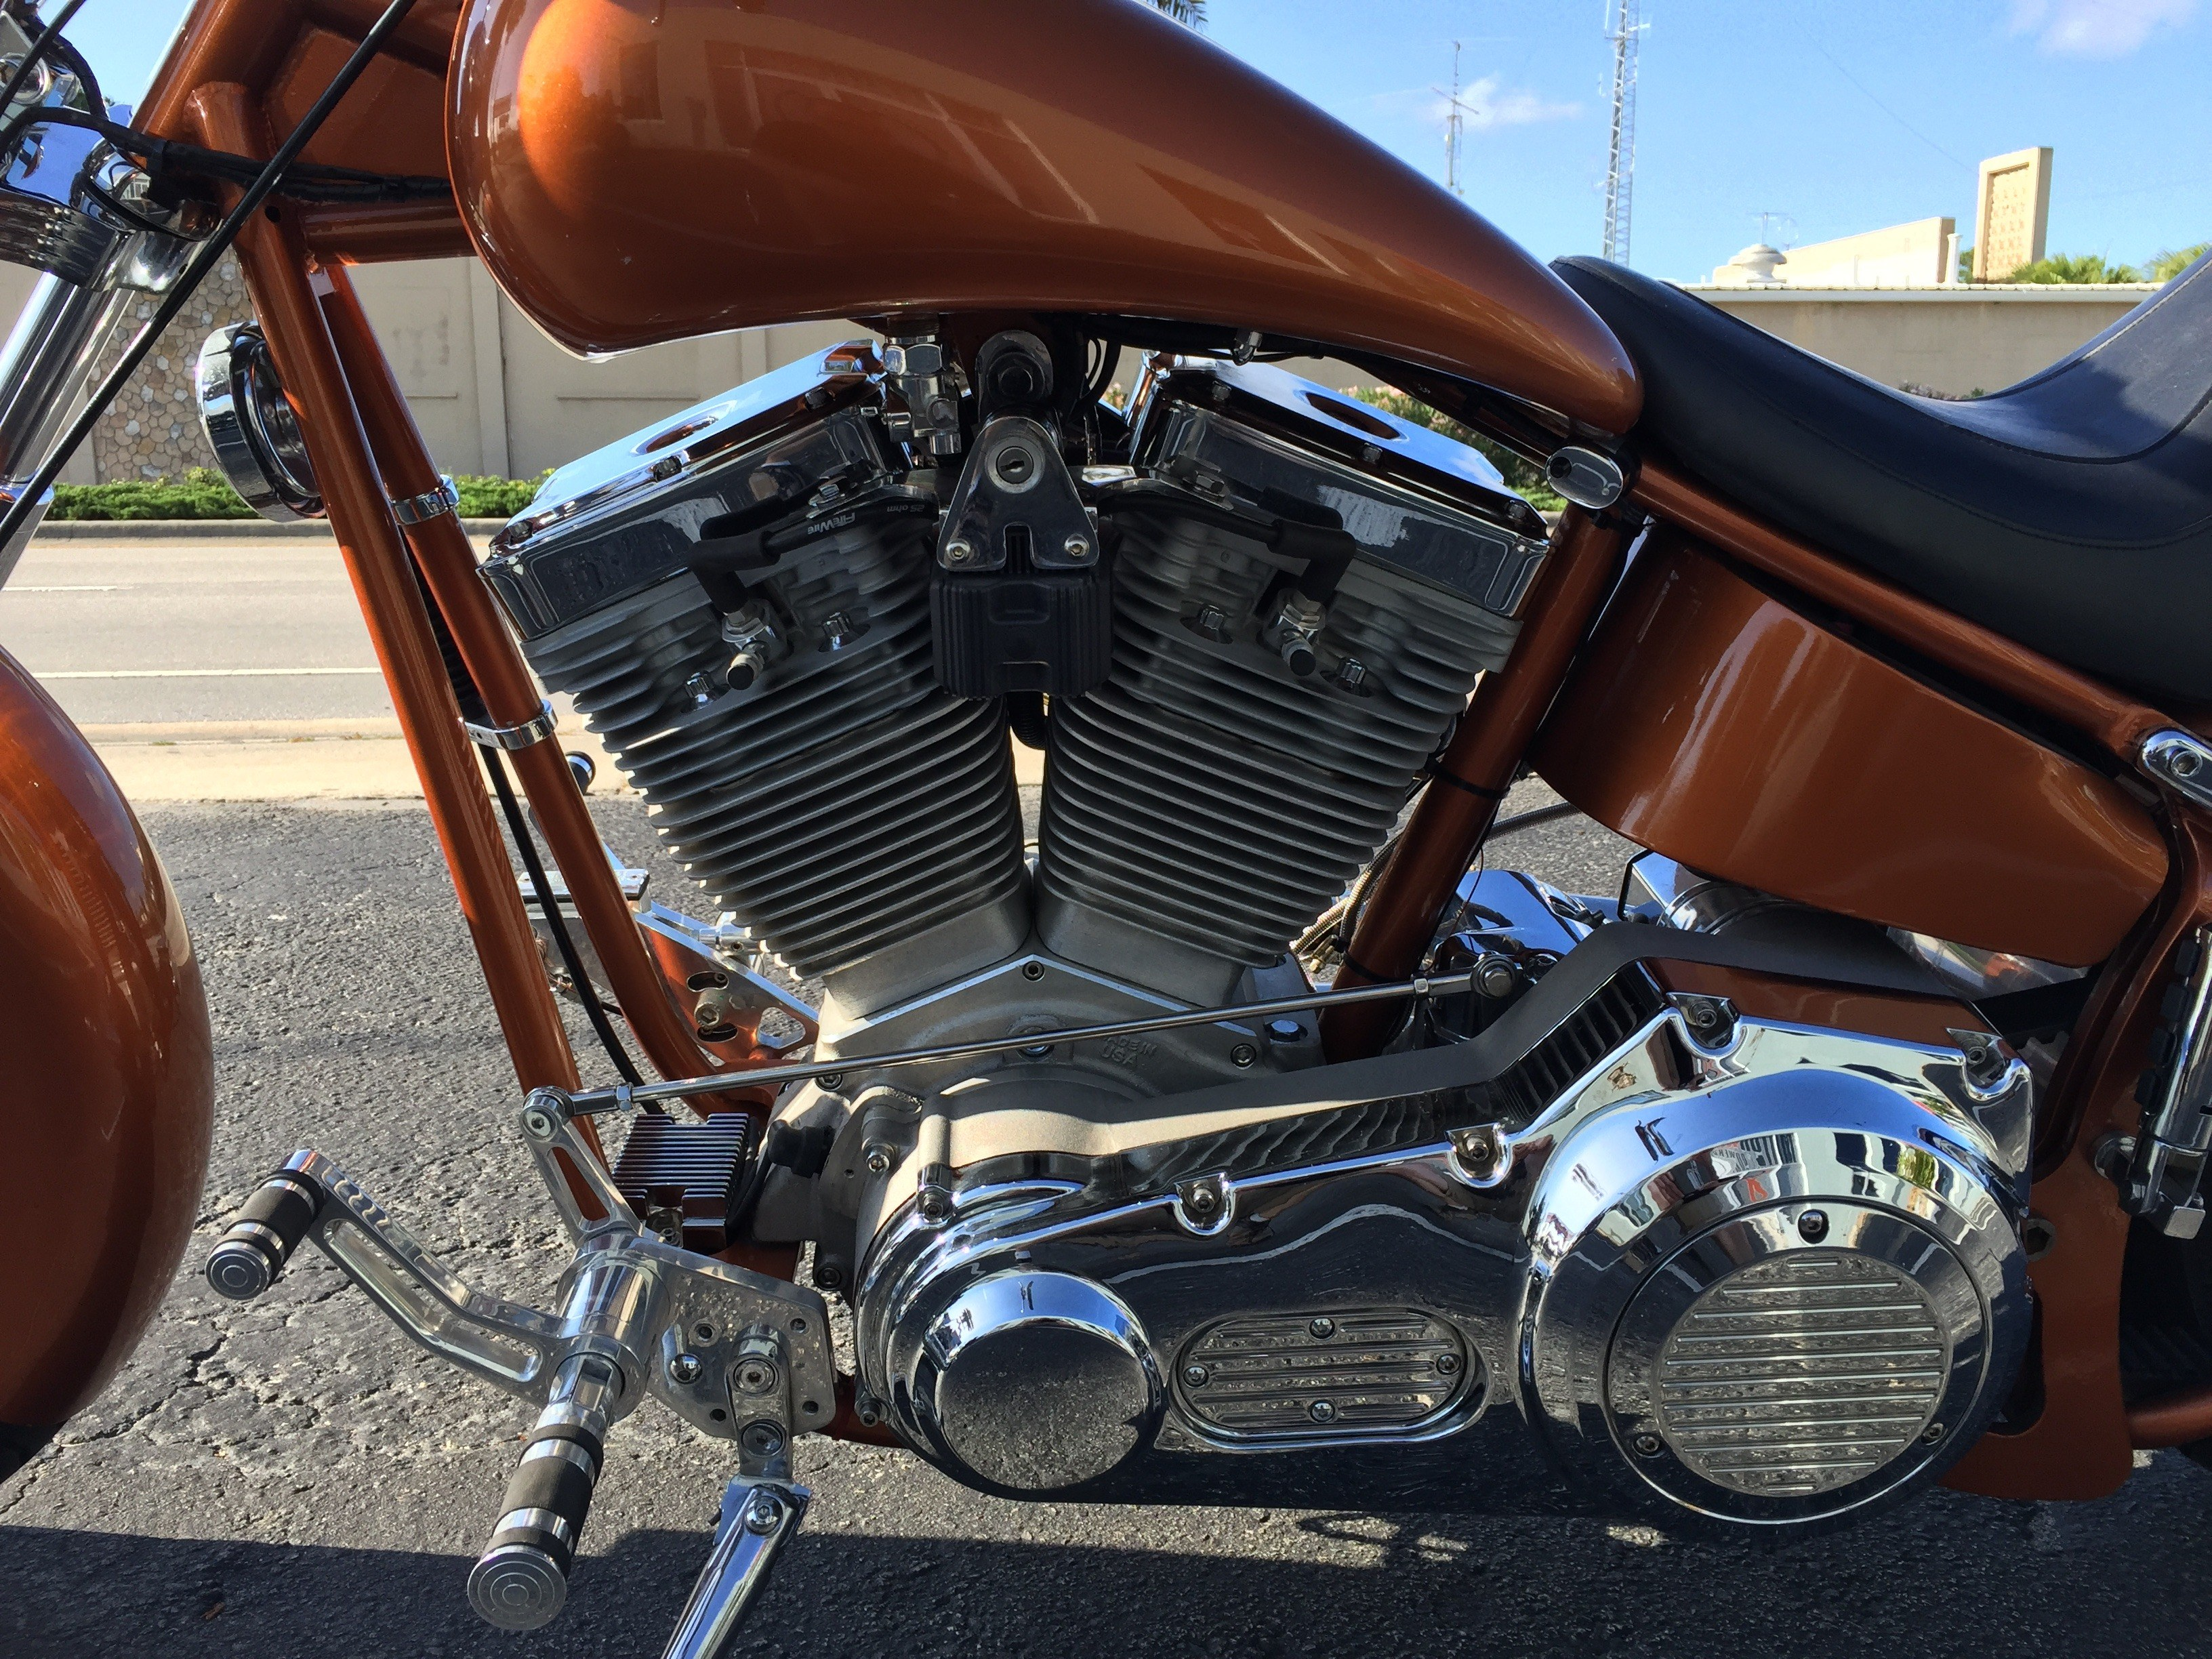 2005 Harley-Davidson Custom Softail in Cocoa, Florida